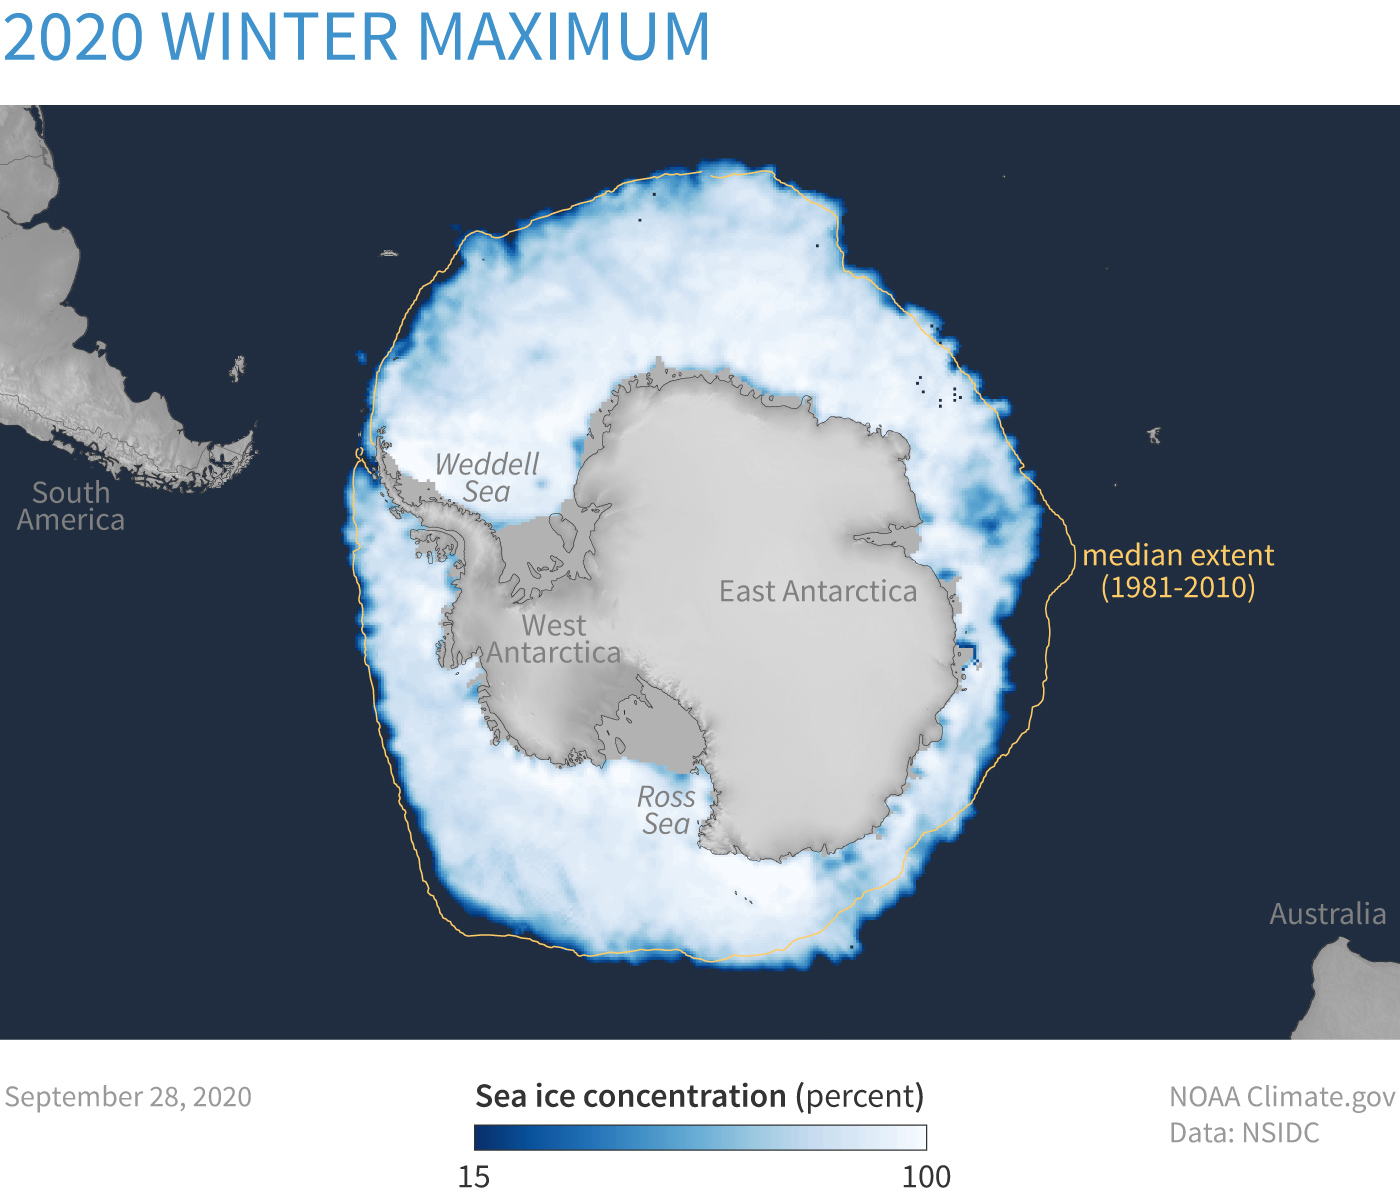 Map of sea ice concentration around Antarctica on Sept 28, 2020